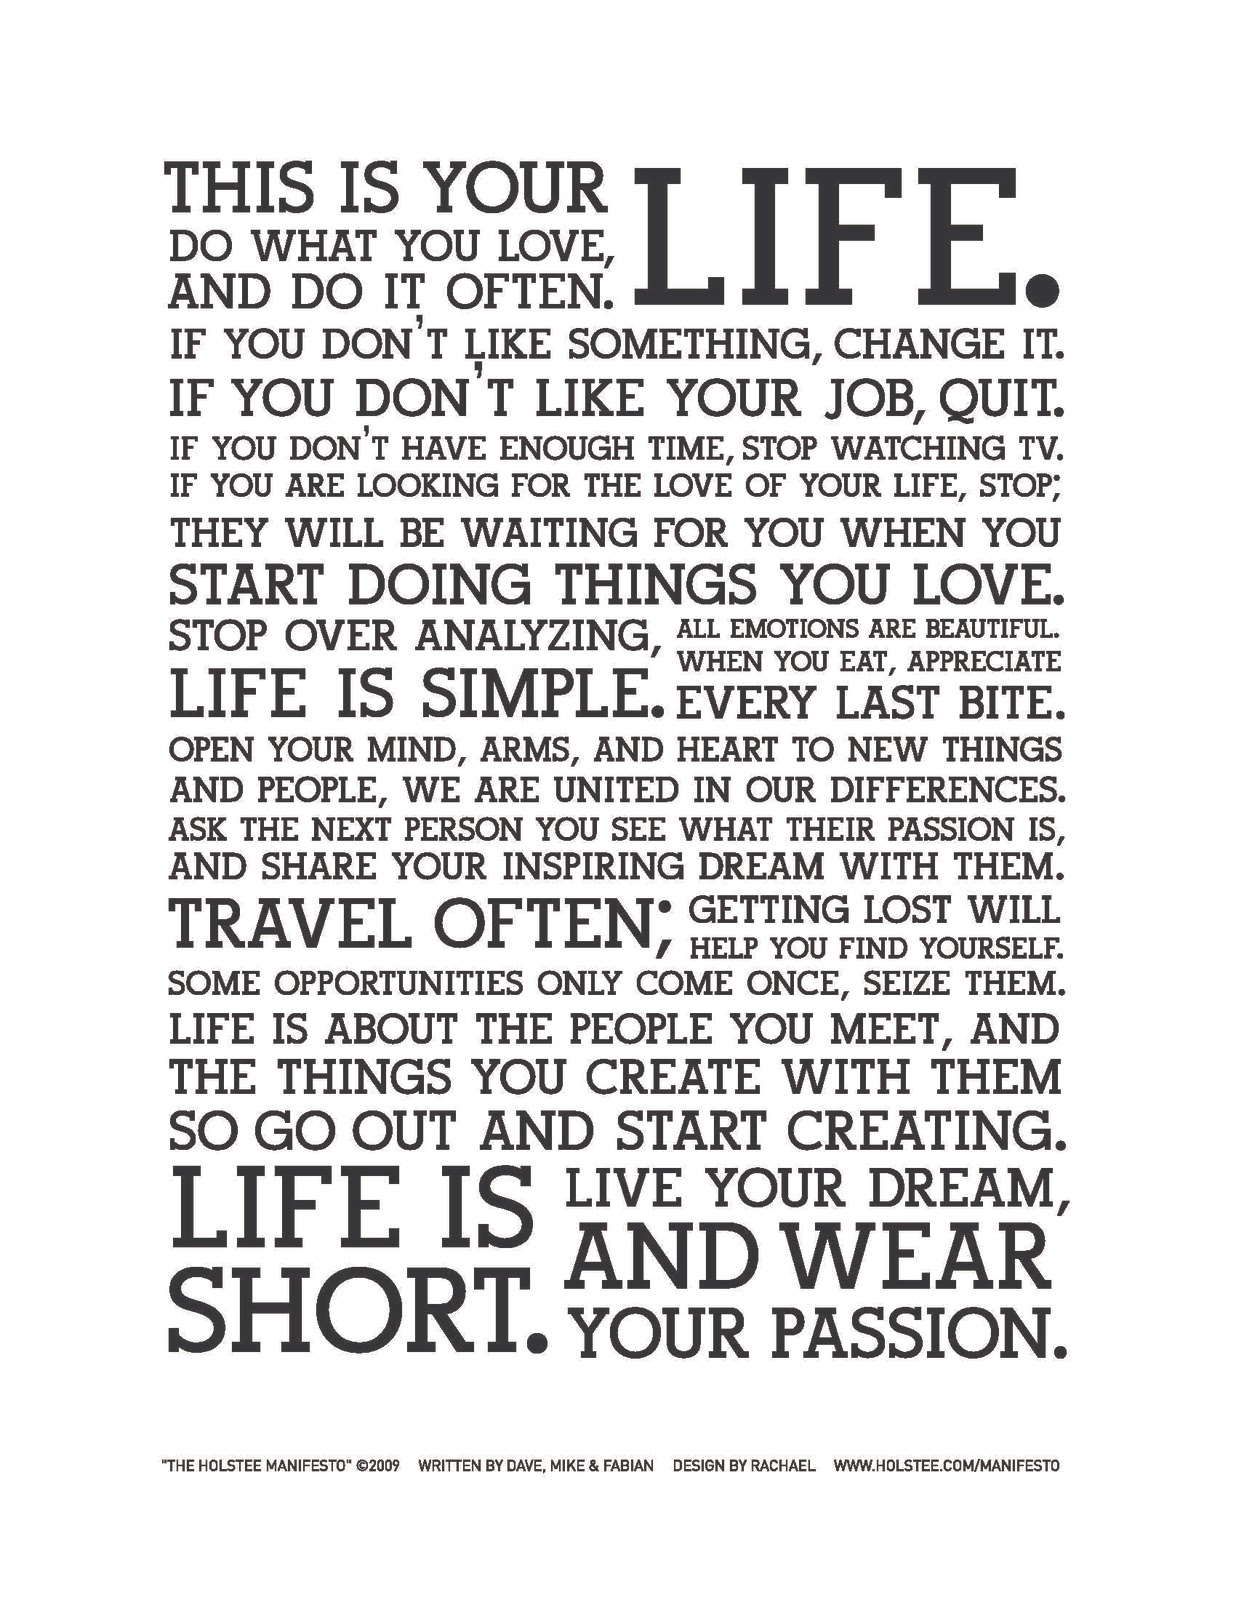 Holstee_Manifesto This is your life